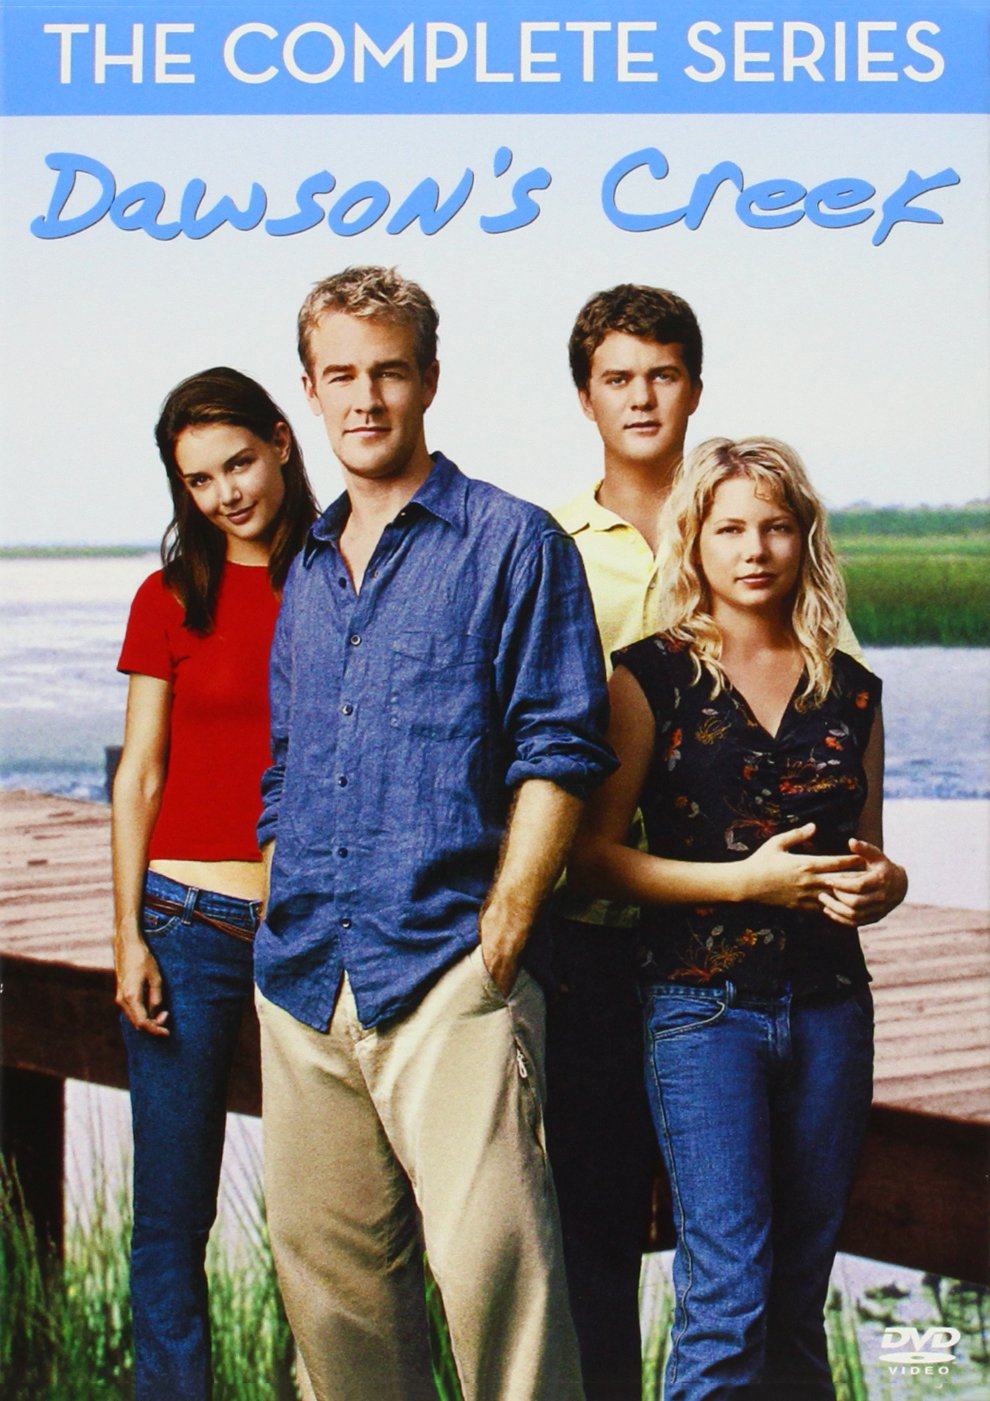 Dawson's Creek: The Complete Series Eion Bailey Monica Keena Dylan Neal Jensen Ackles